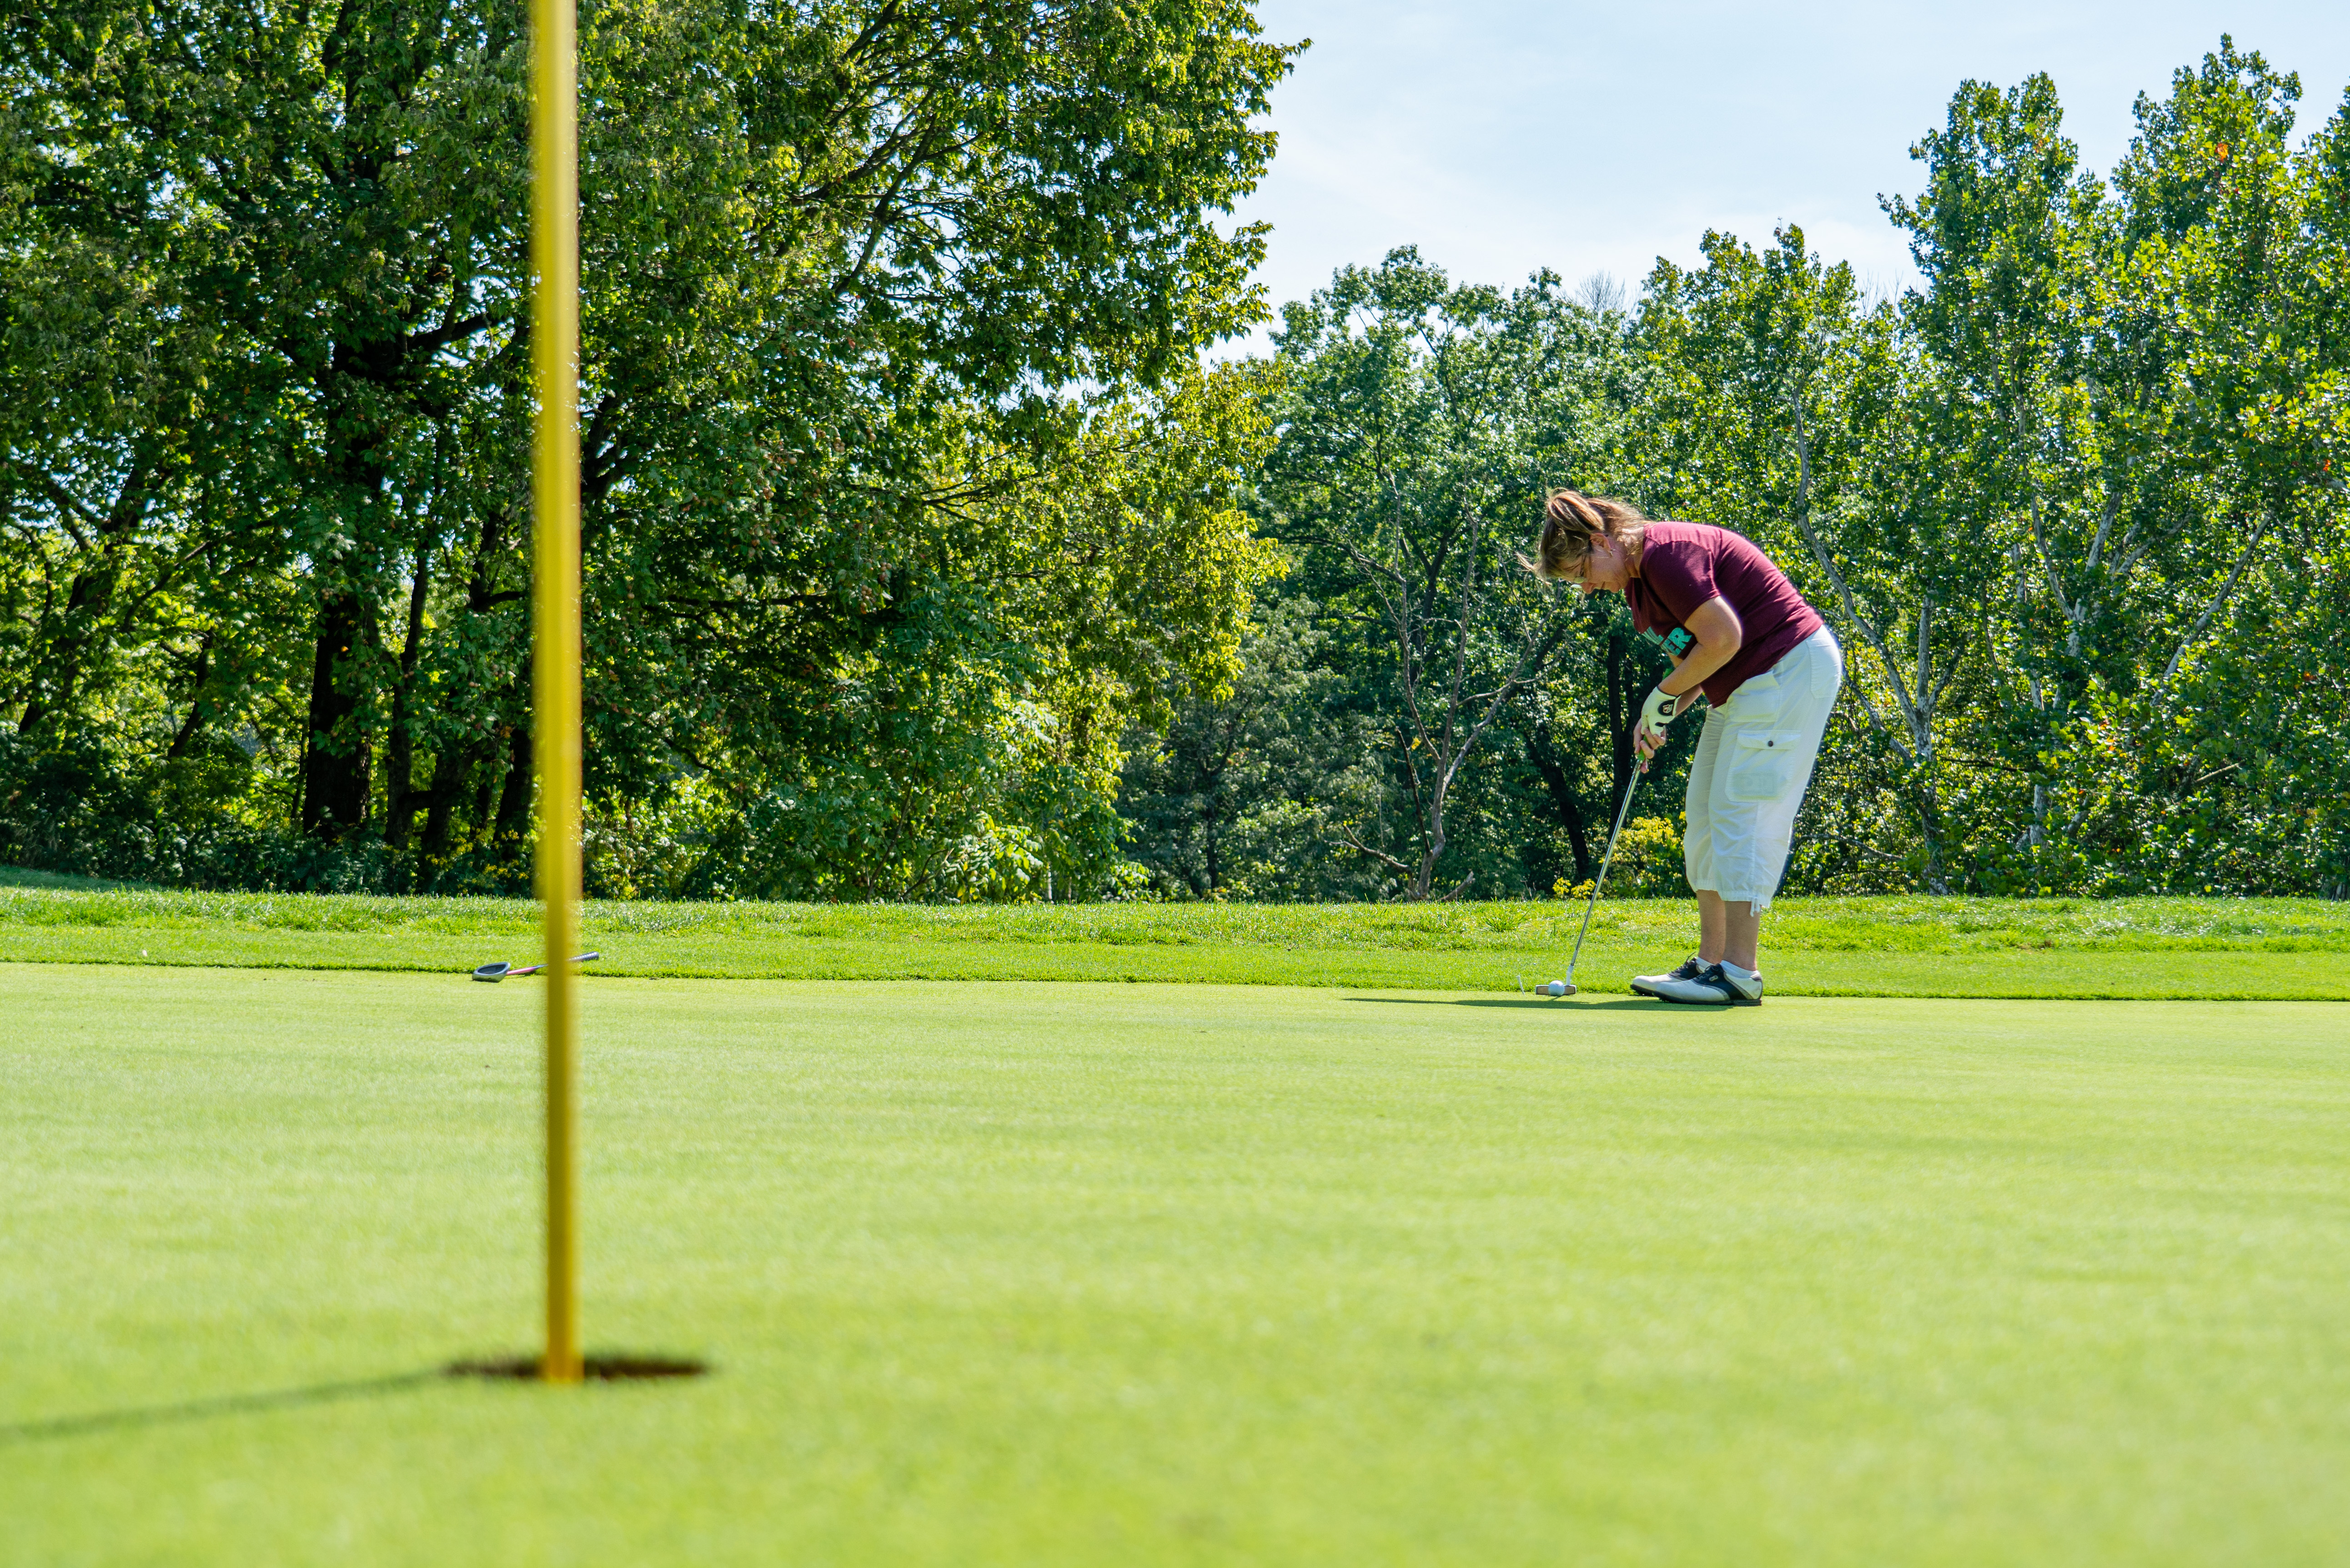 A woman in a maroon shirt and khaki pants is golfing on the green close to the hole at Shawnee Lookout Golf Course.